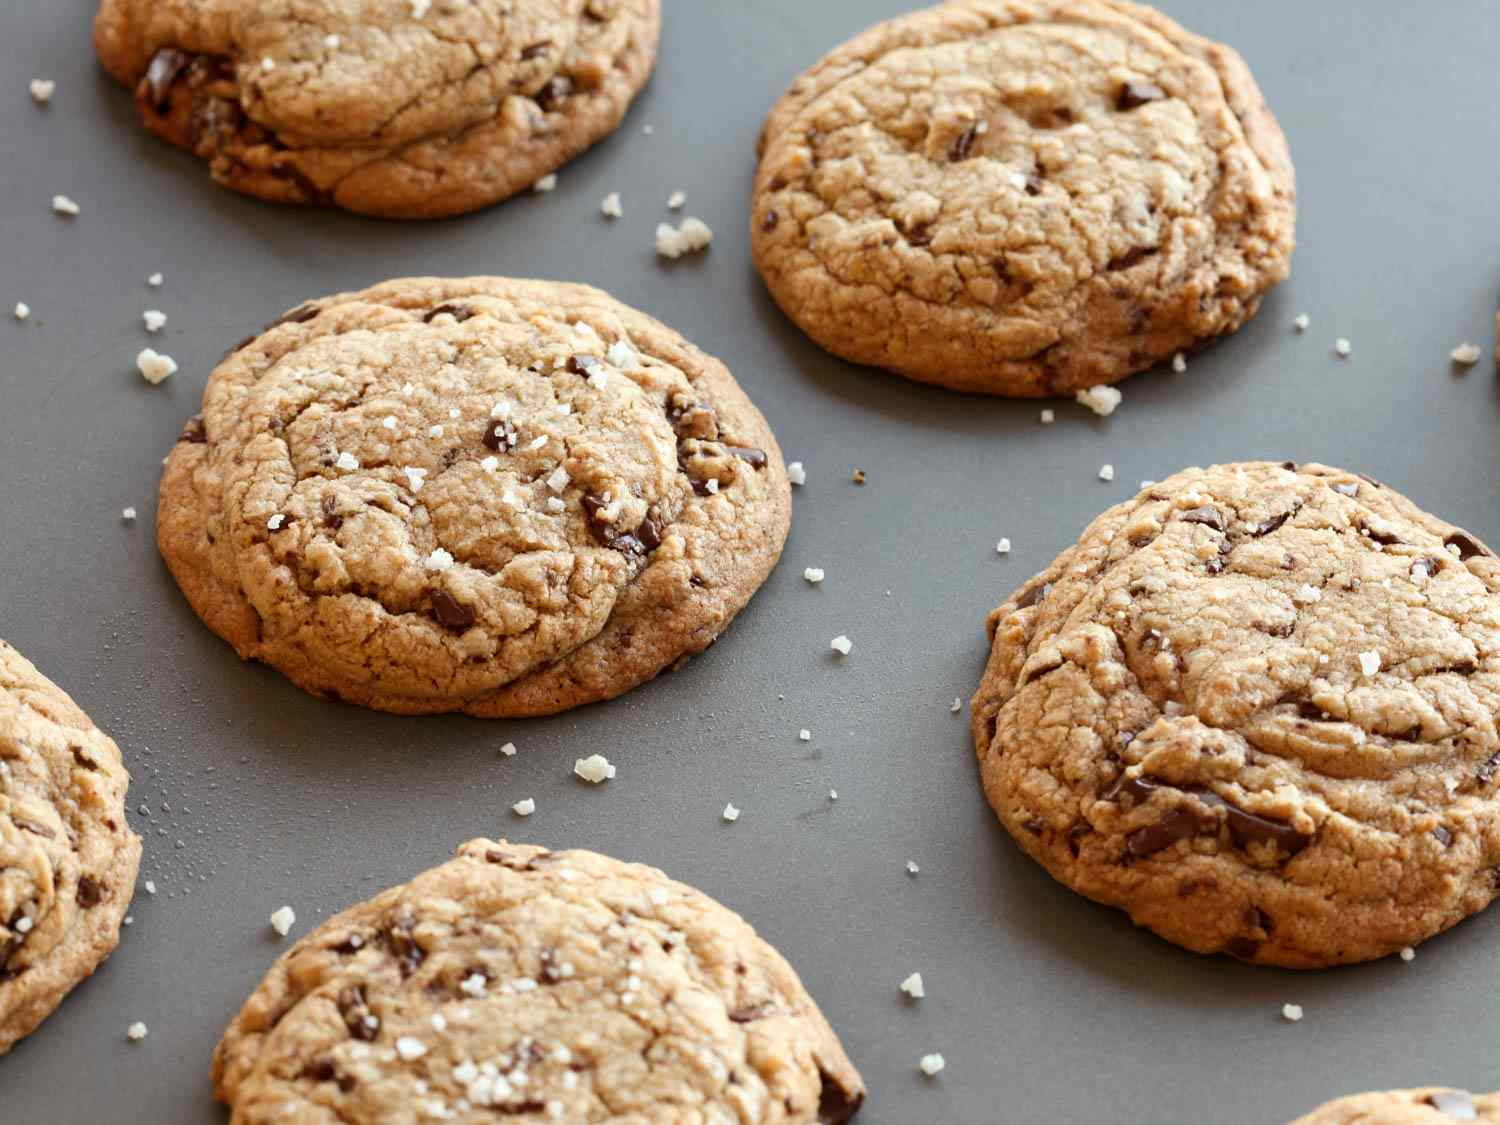 Array of chocolate chip cookies with craggy tops on a grey background.